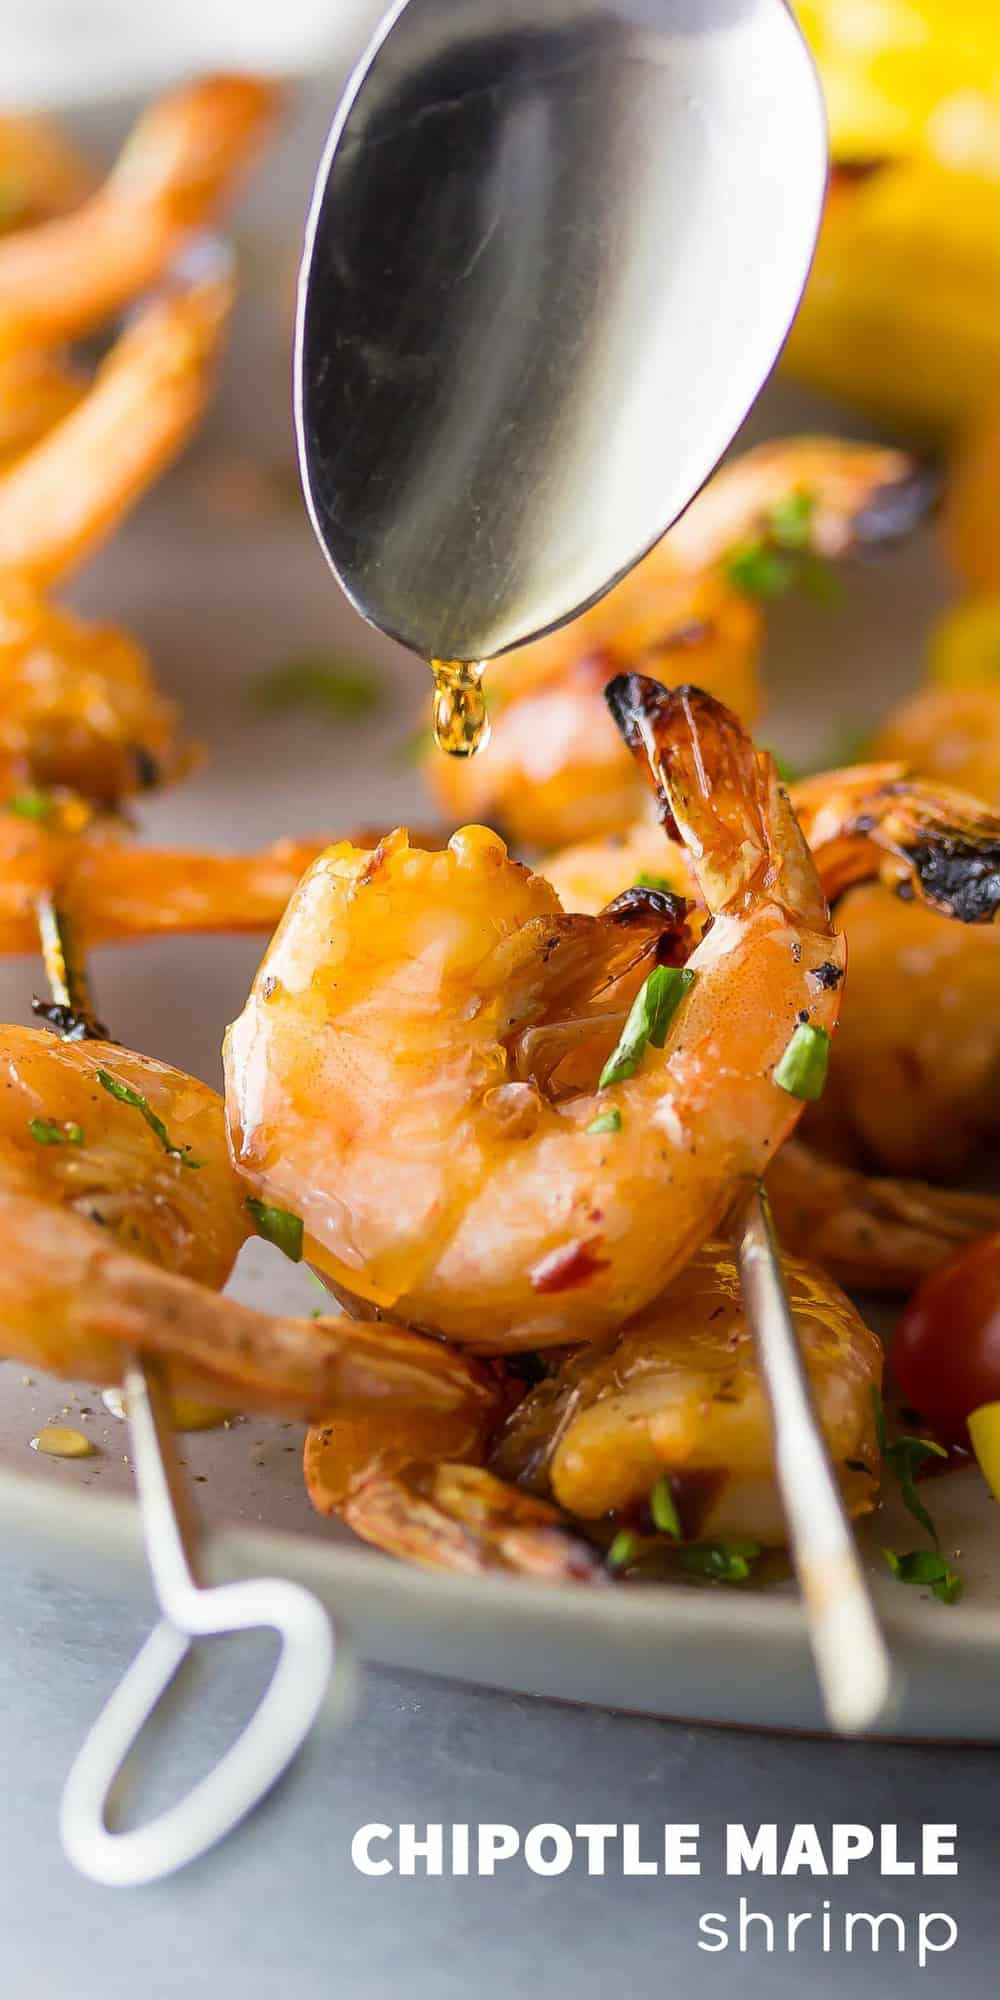 These Chipotle Grilled Shrimp Skewers with Maple Glaze have dinner ready in under 30 minutes!